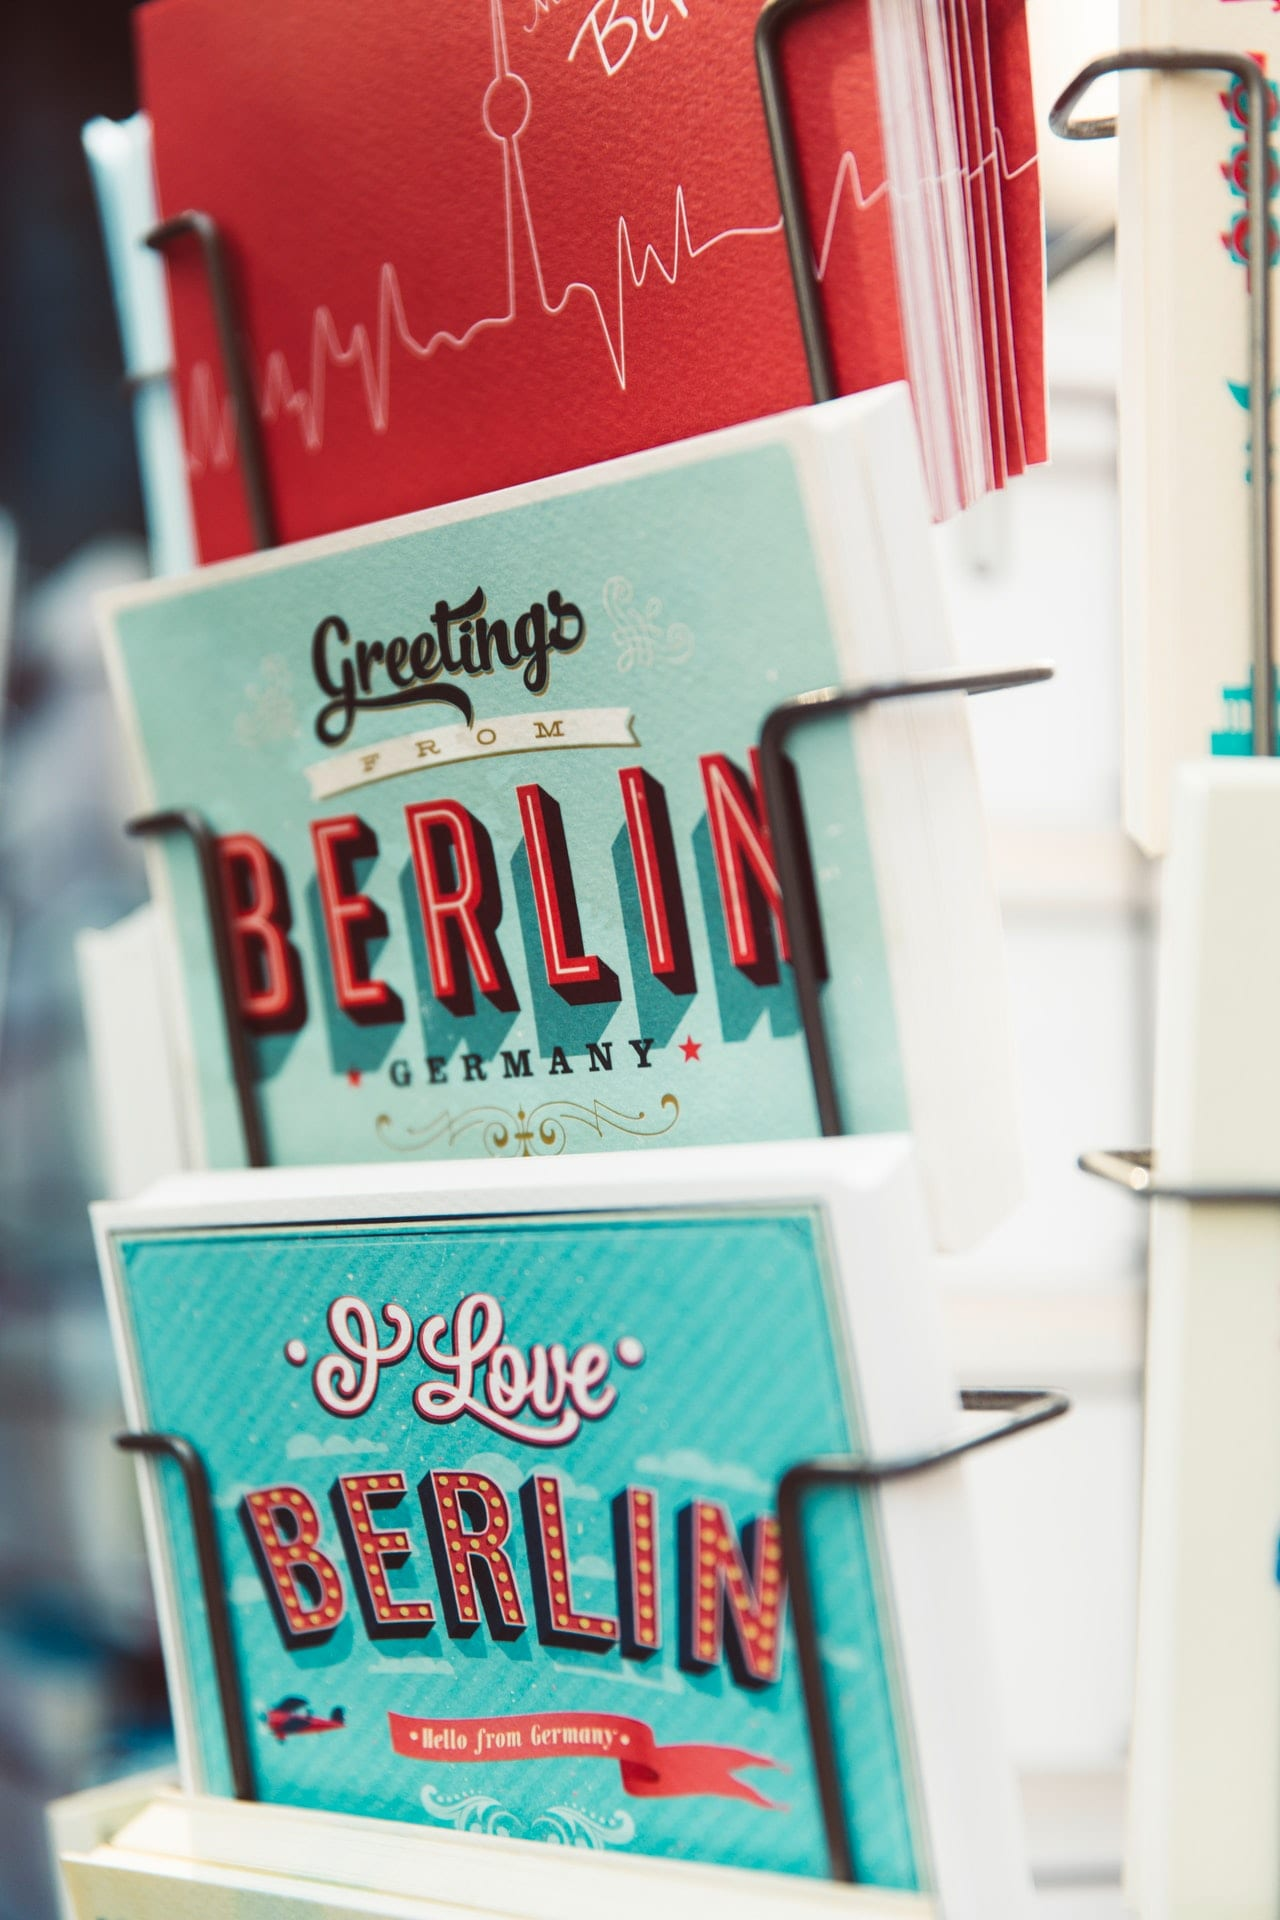 Berlin is a haven for technology and education